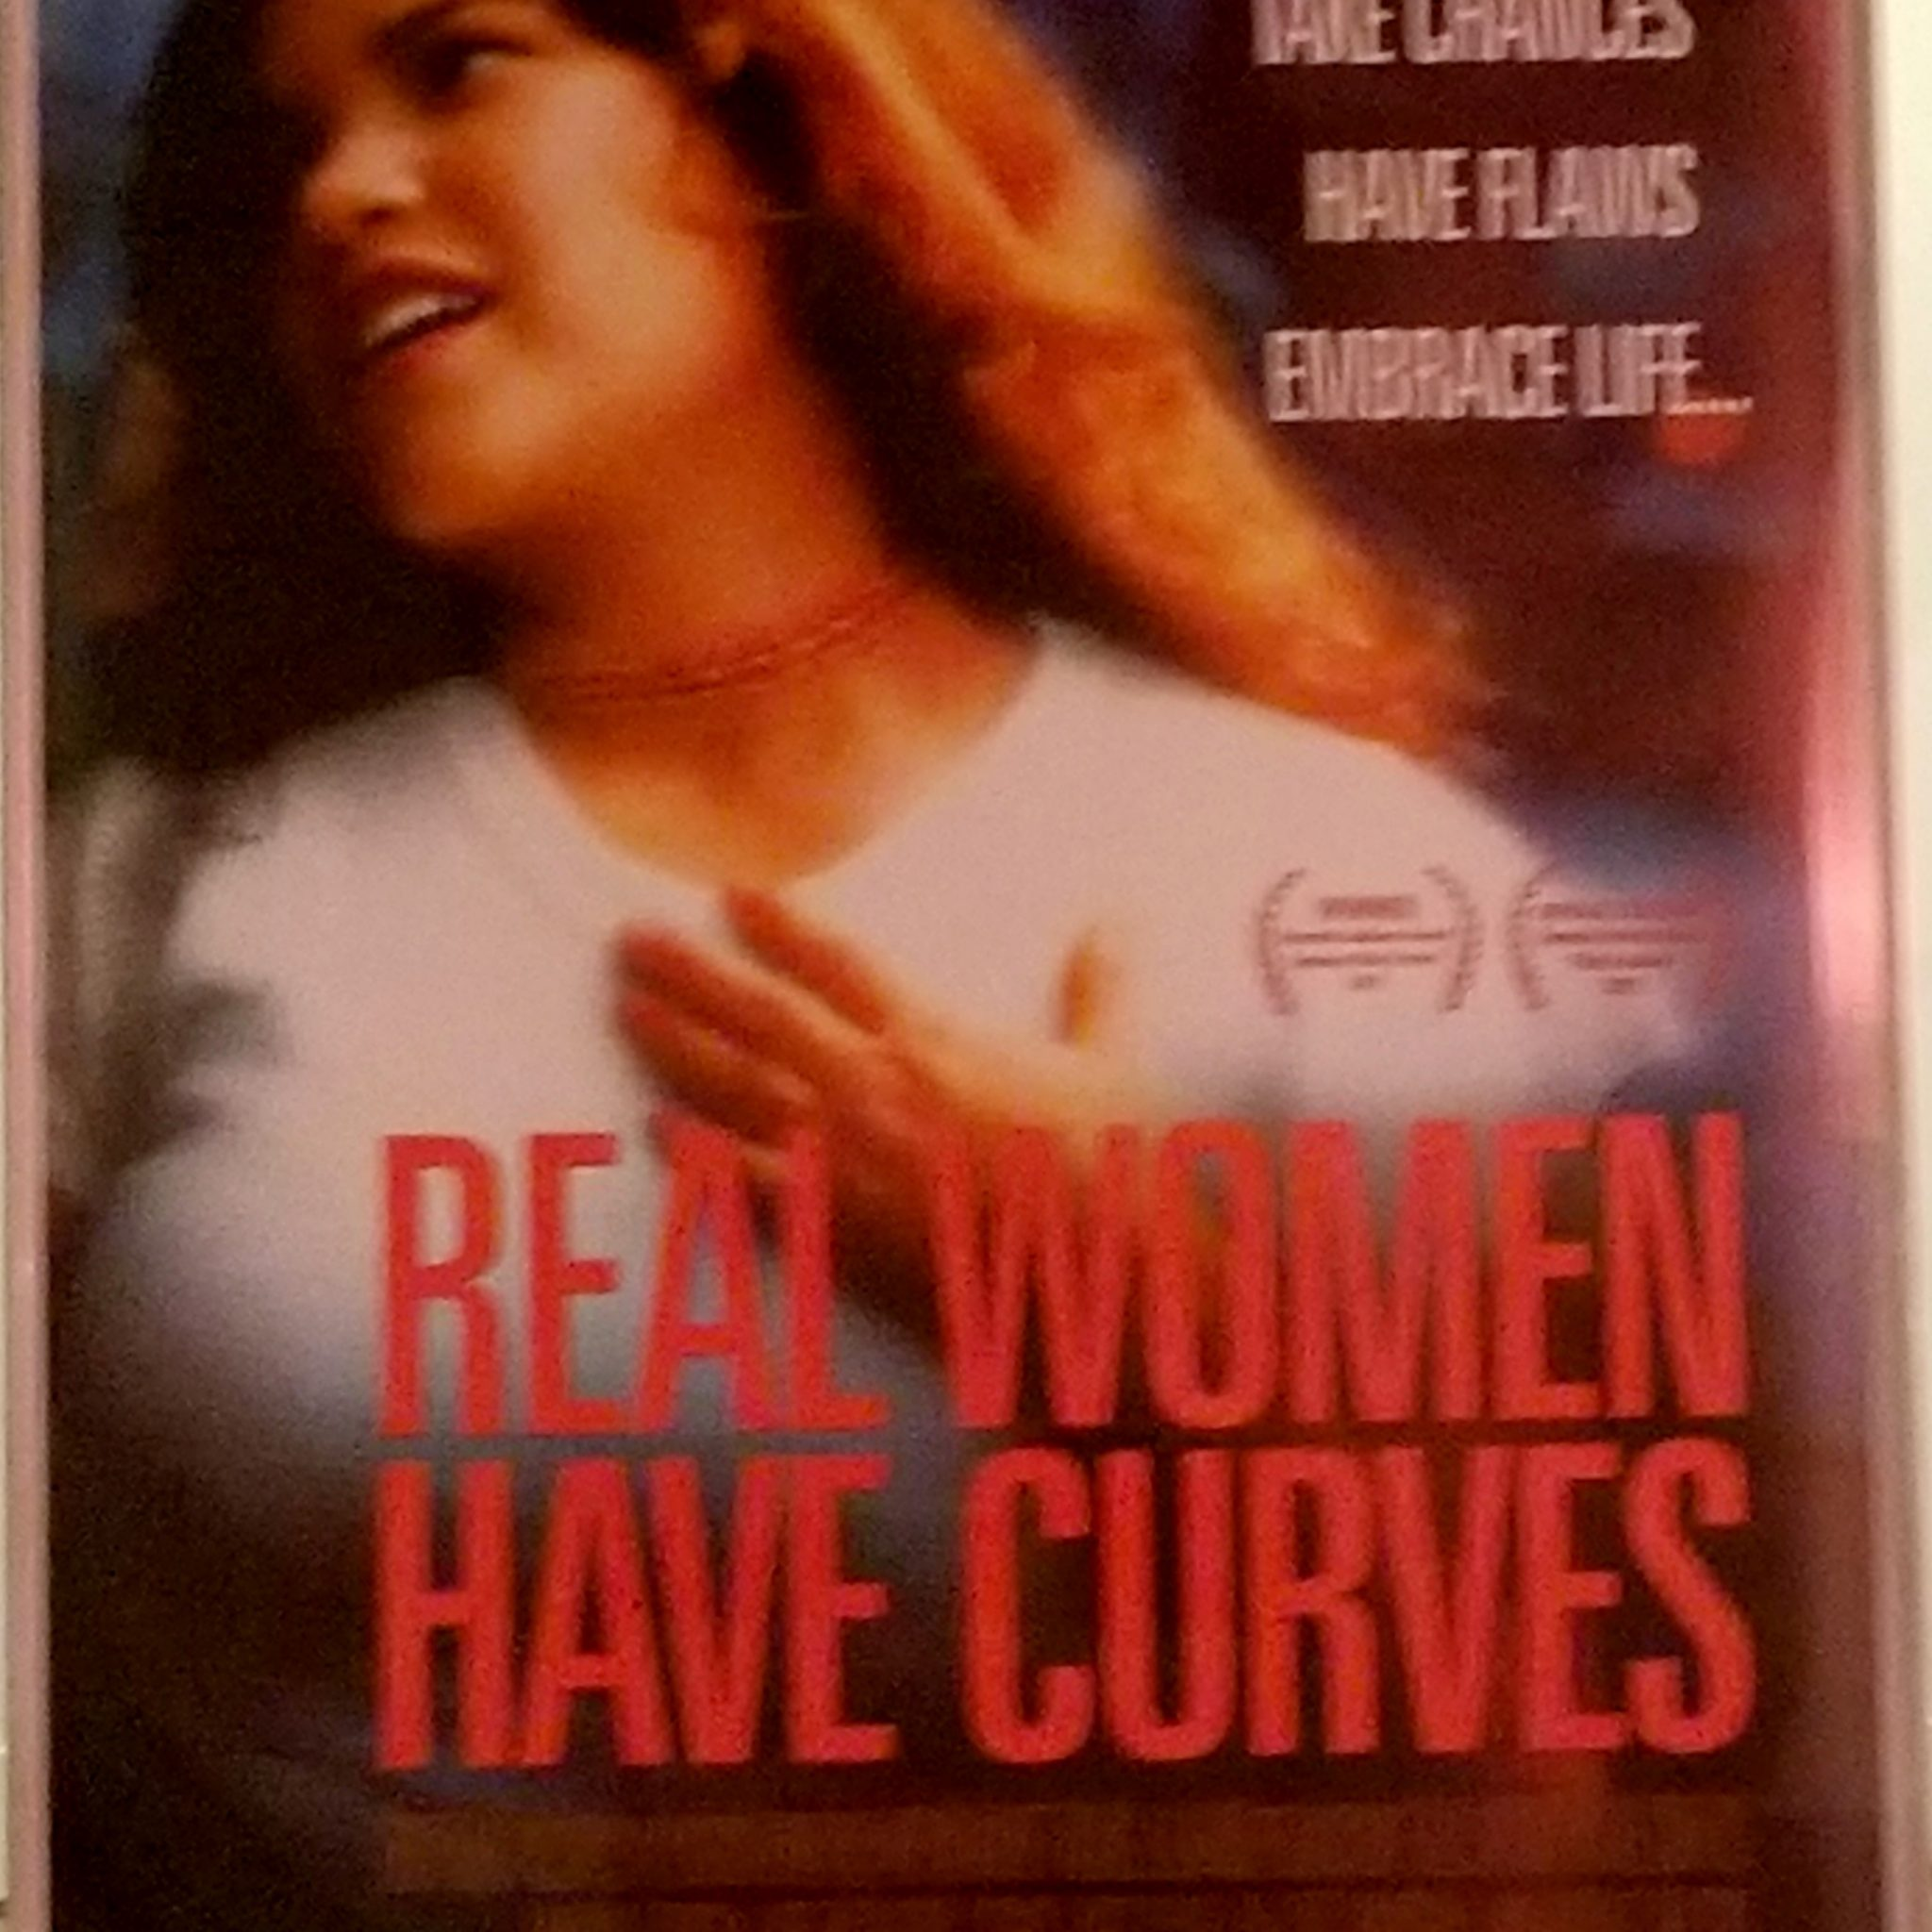 real women have curves book